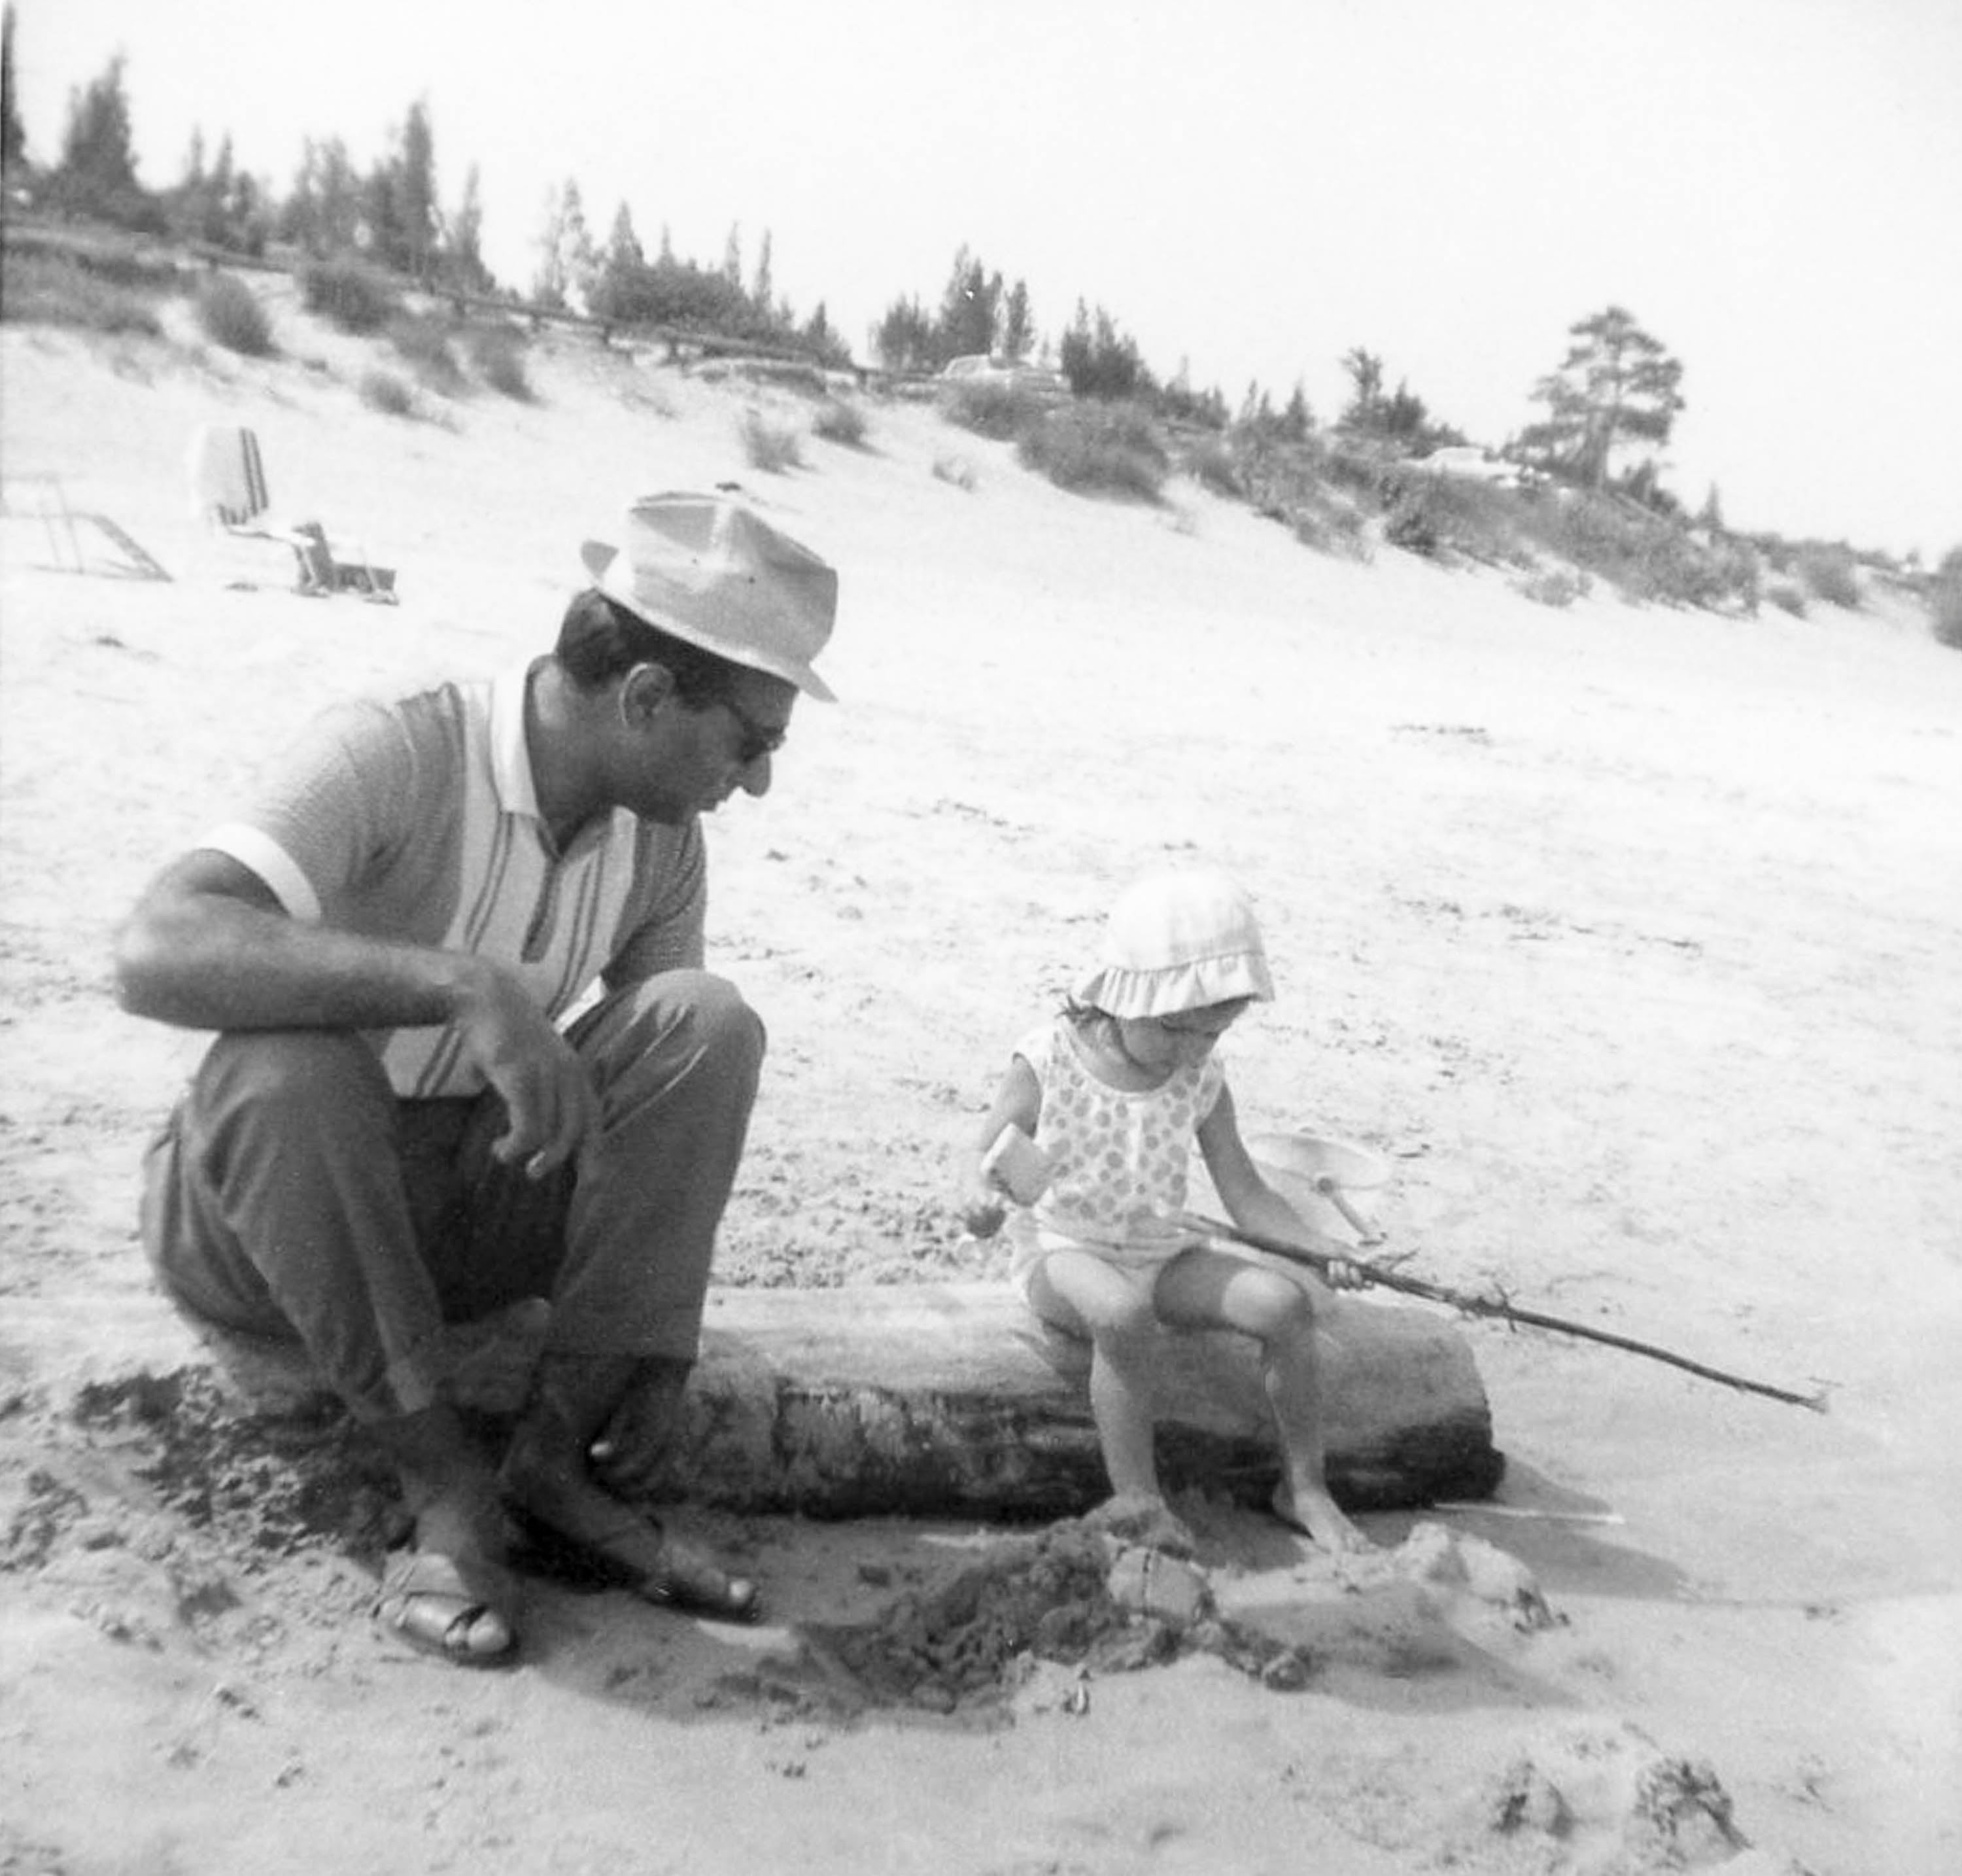 A father and his young daughter play at fishing on a beach. They sit on a log using a stick as a log and are dressed for summer, both wearing hats